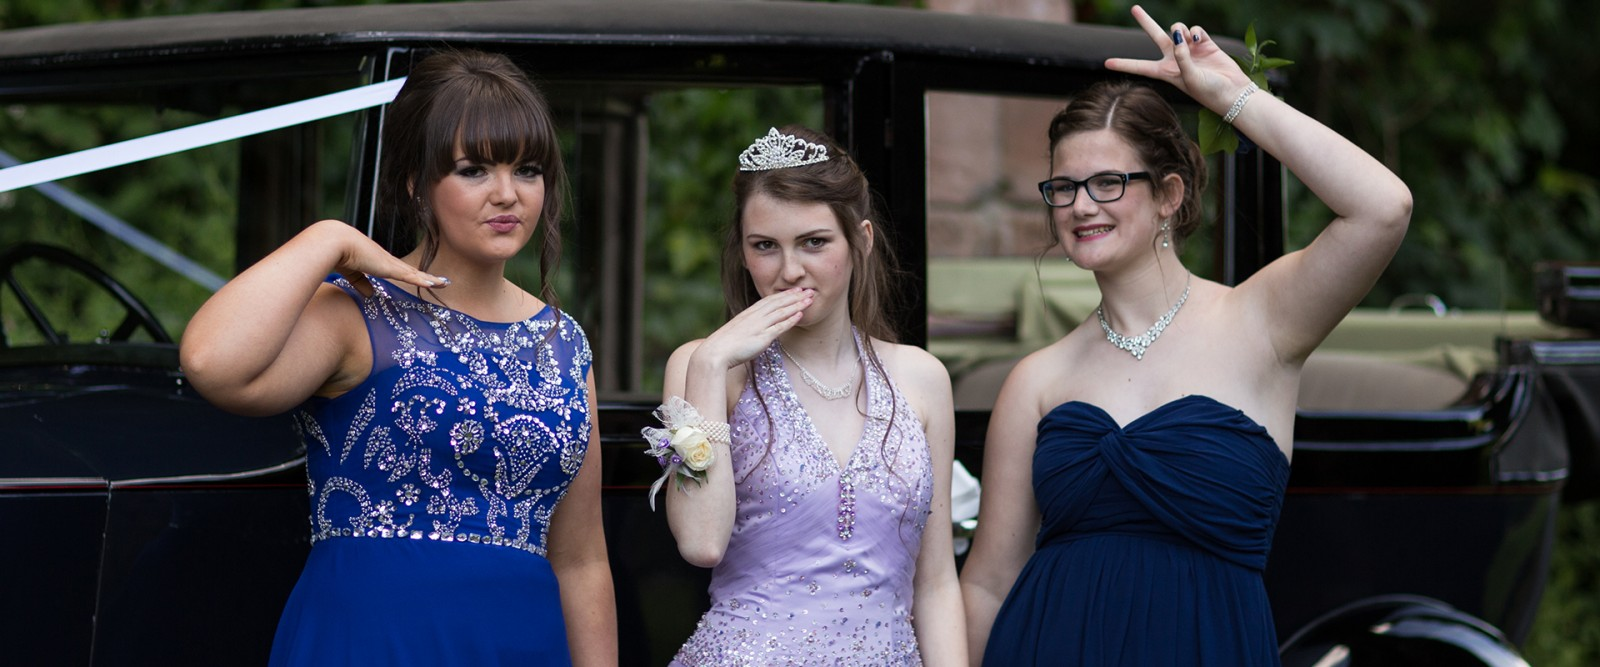 20150708Prom-23-featured